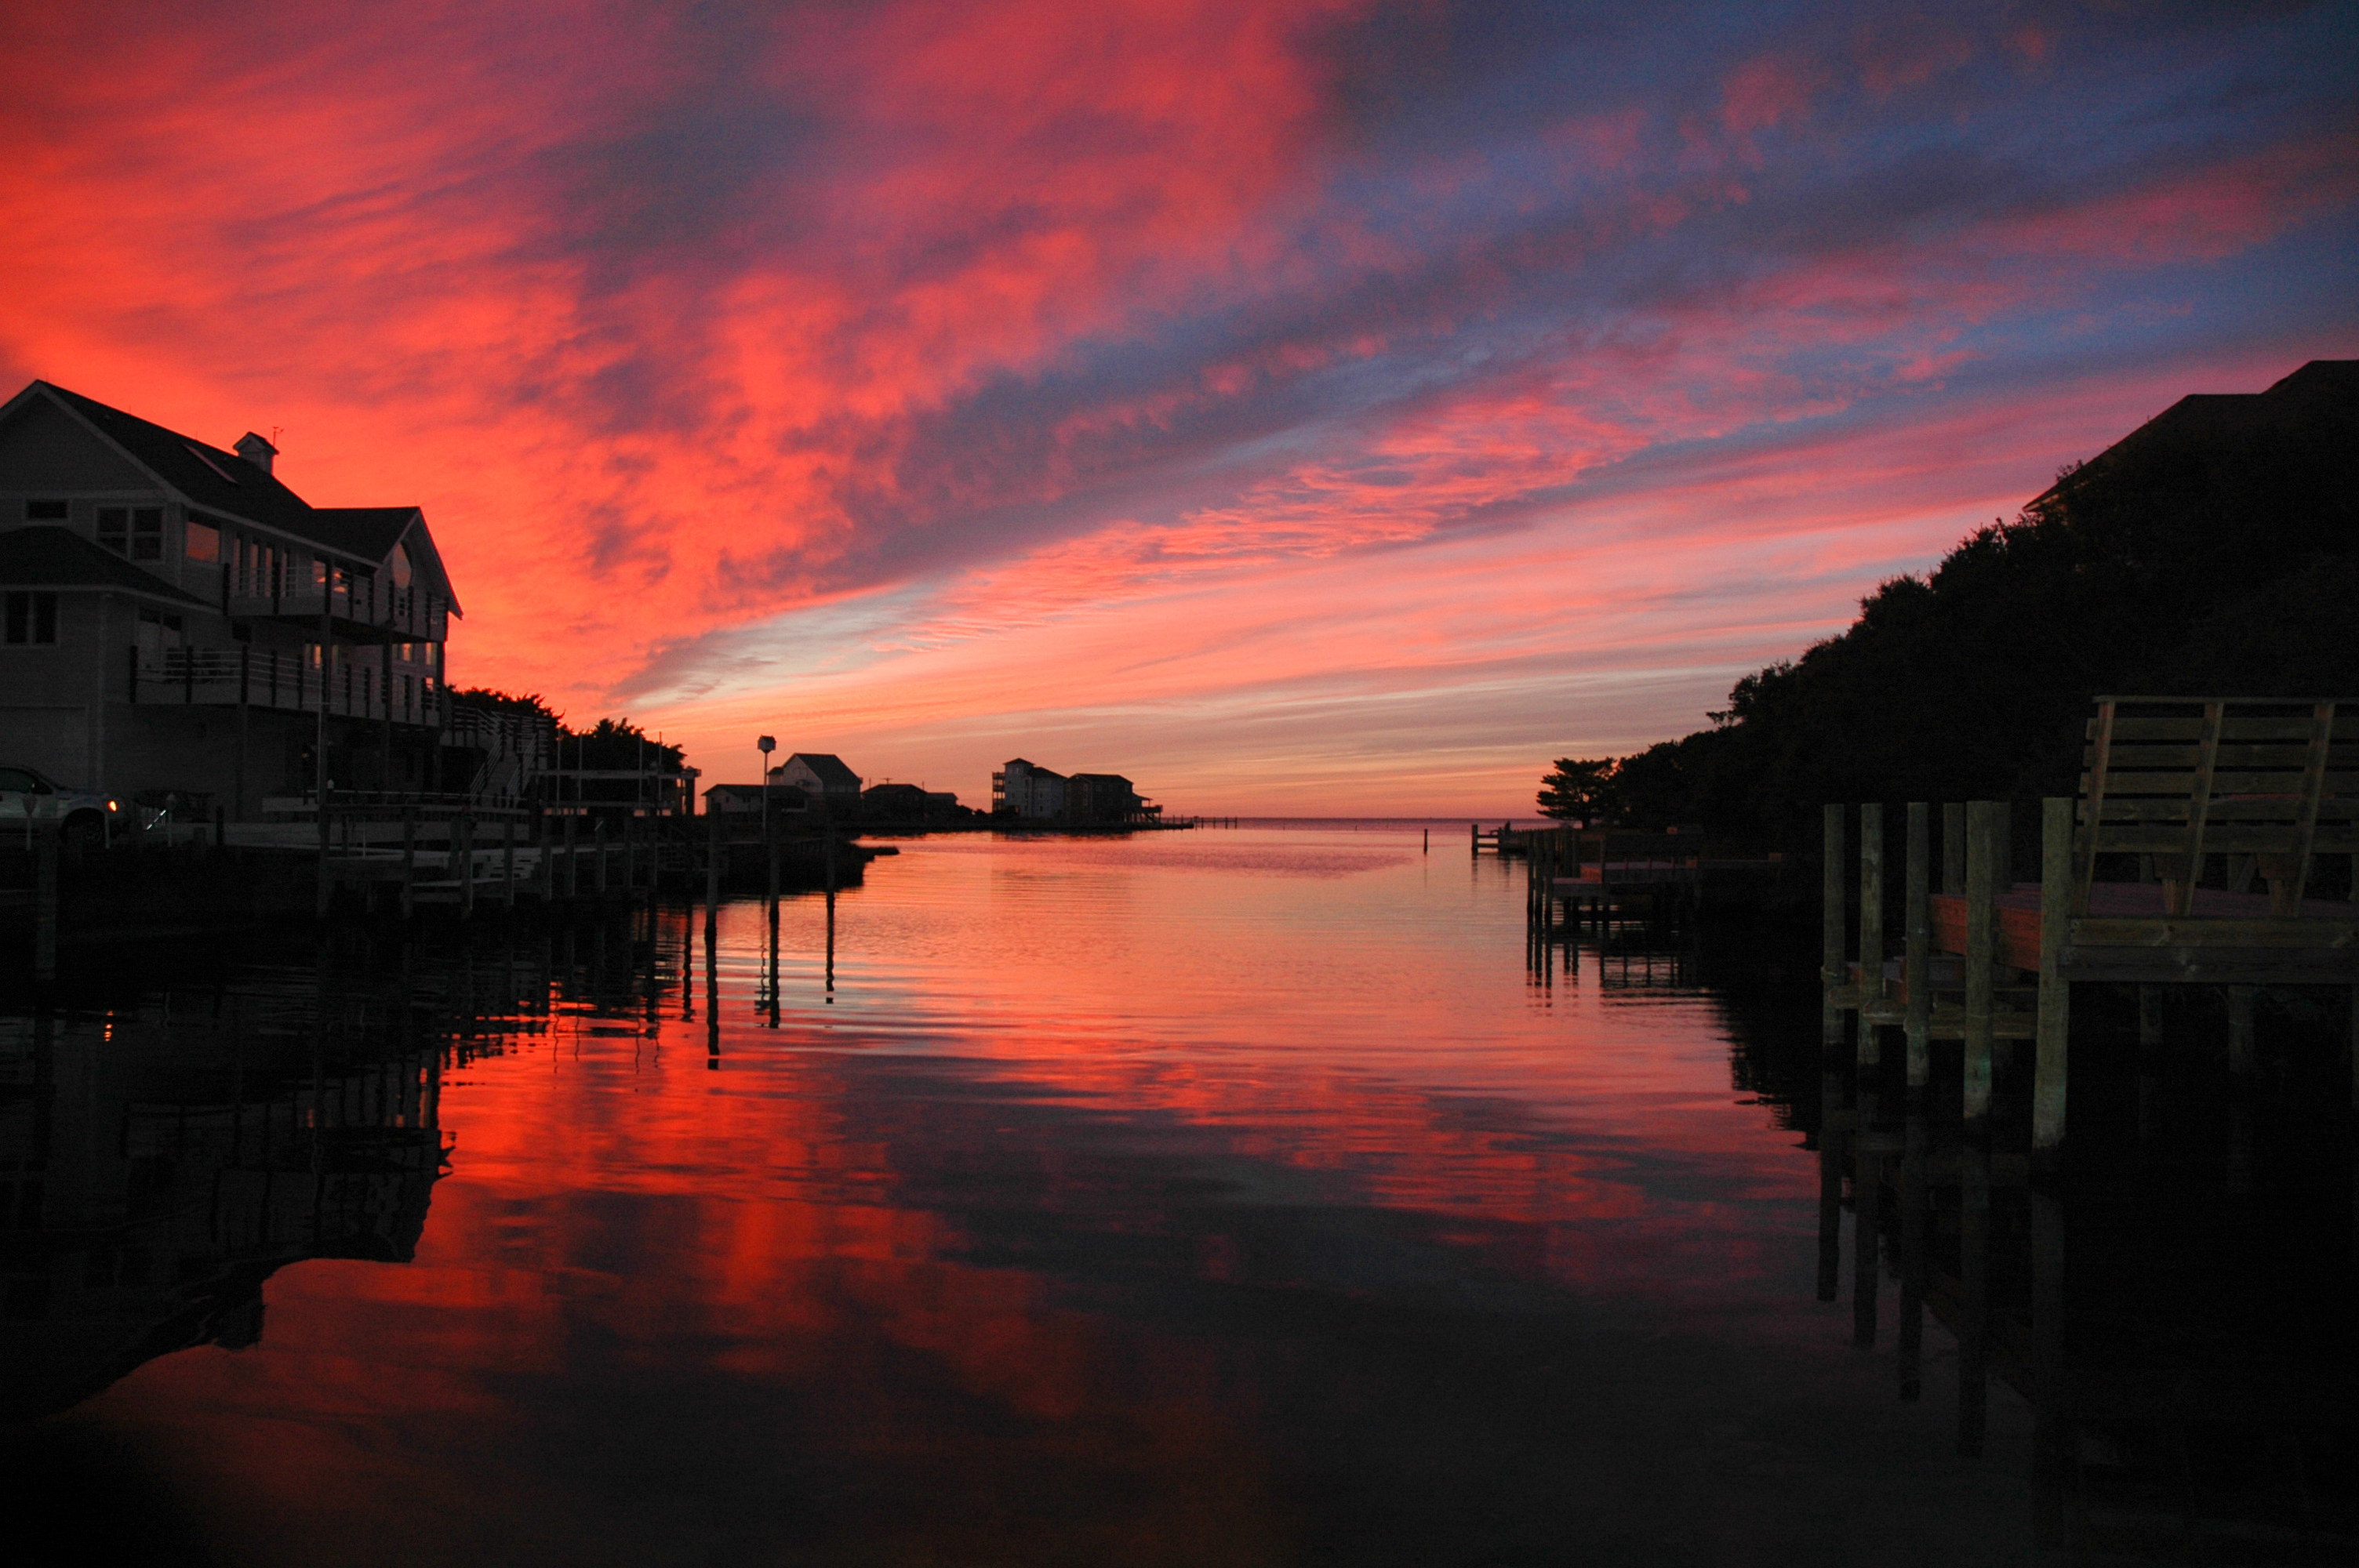 January Sunset in Brigand's Bay, Frisco, NC